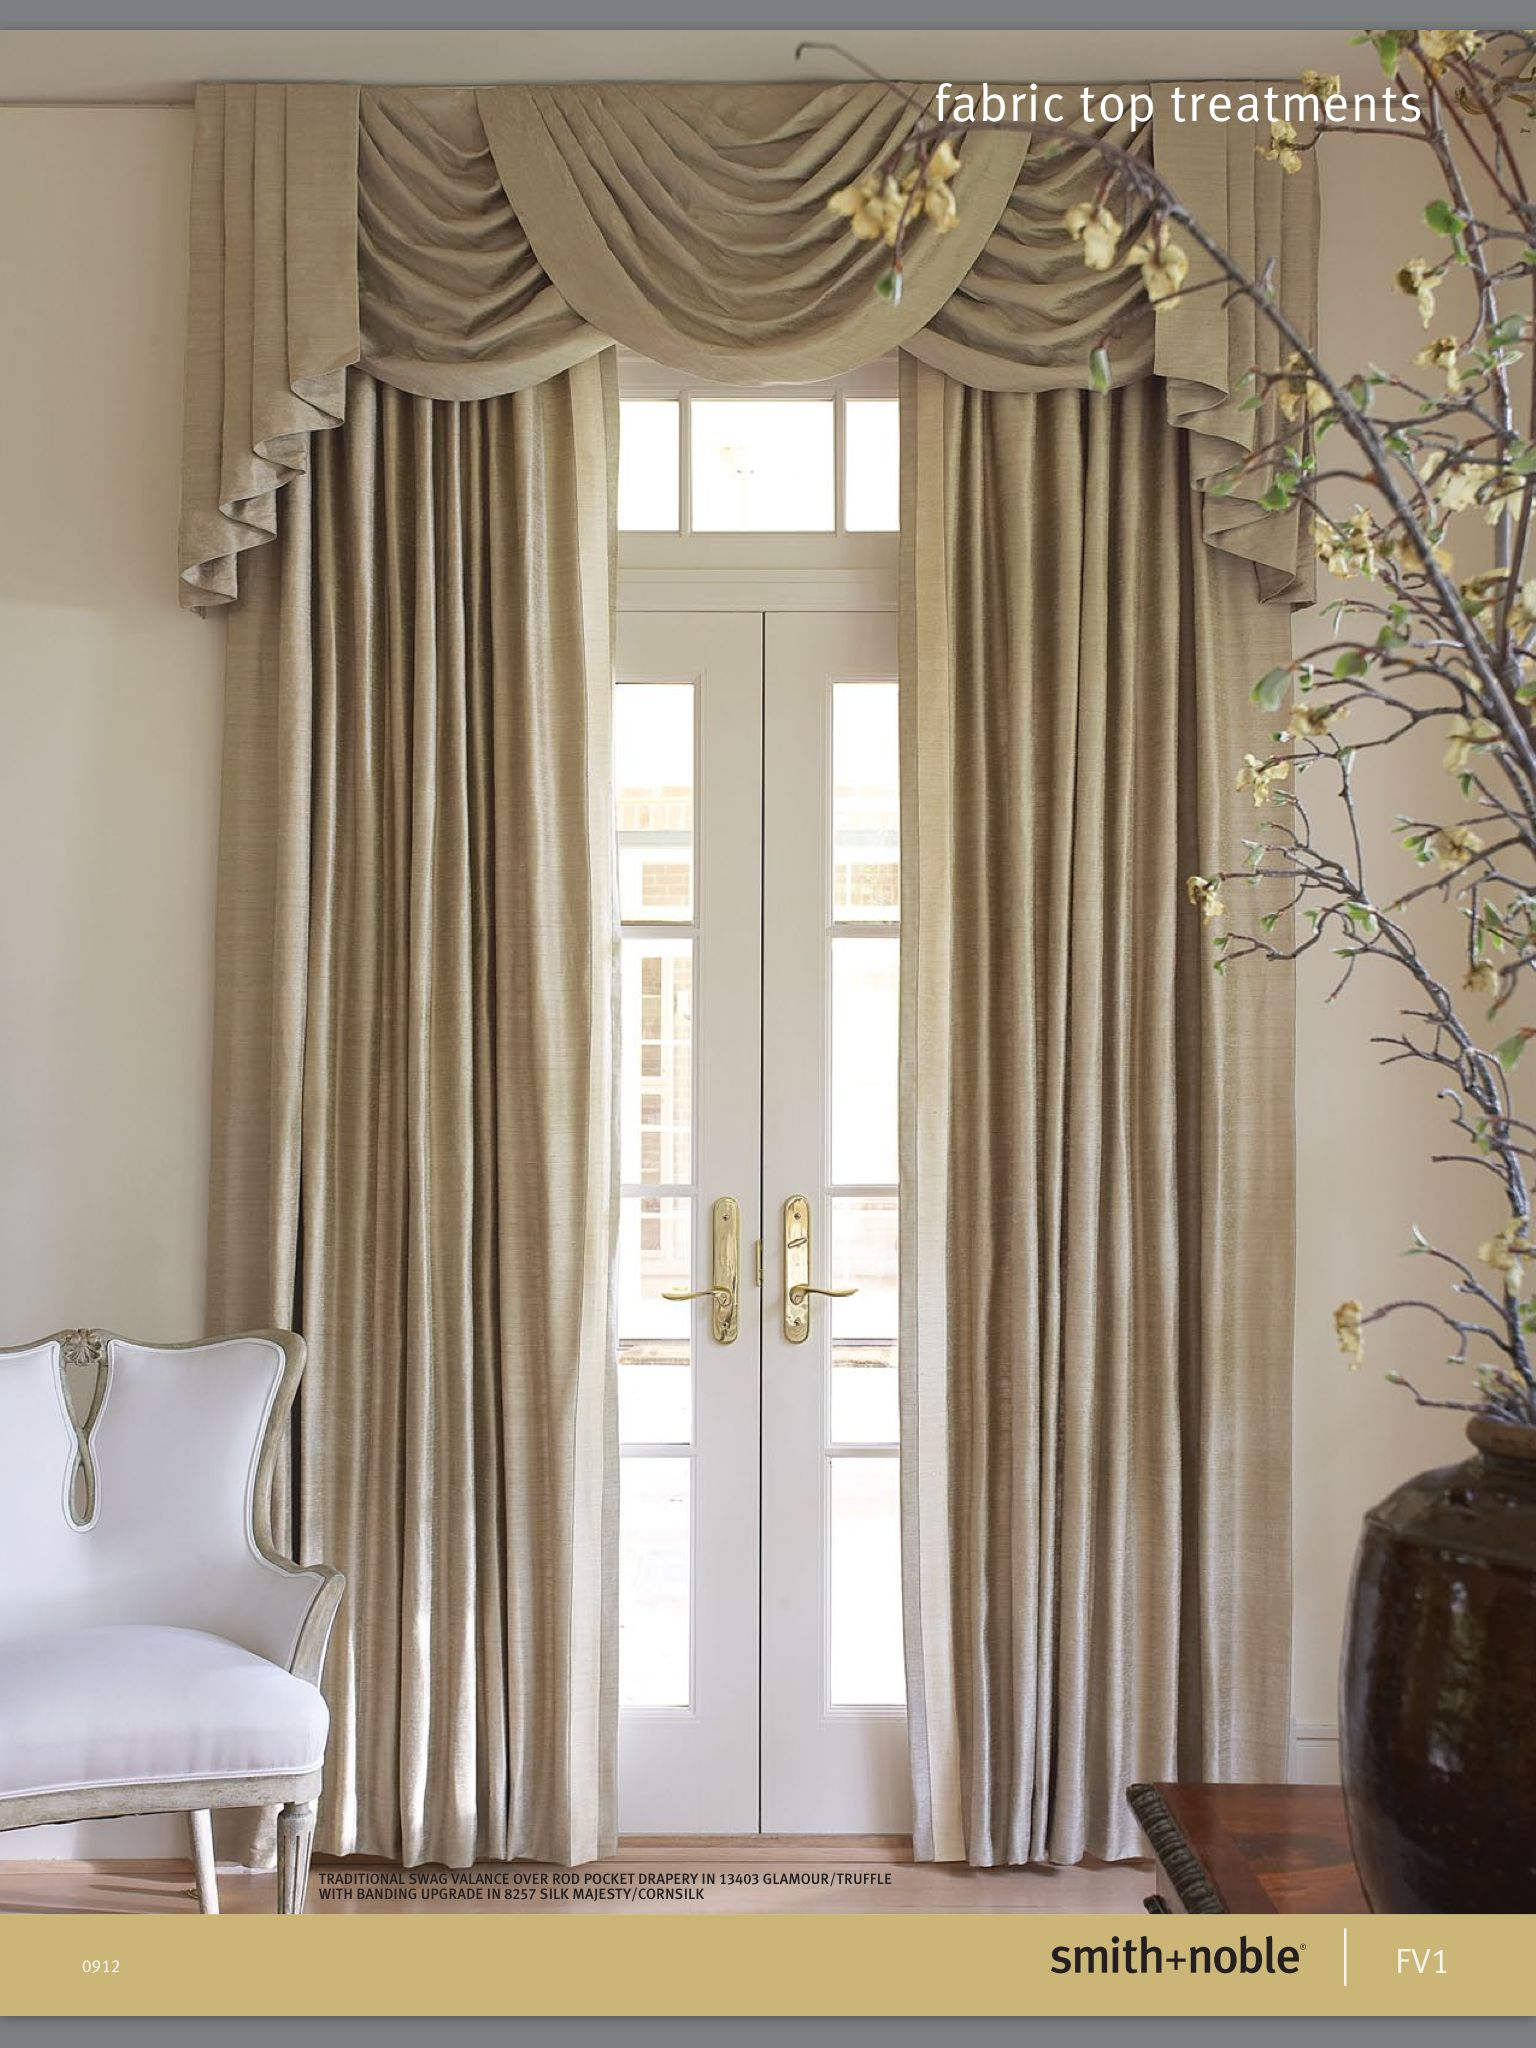 Formal Drapery   Home, Curtains, Valance curtains